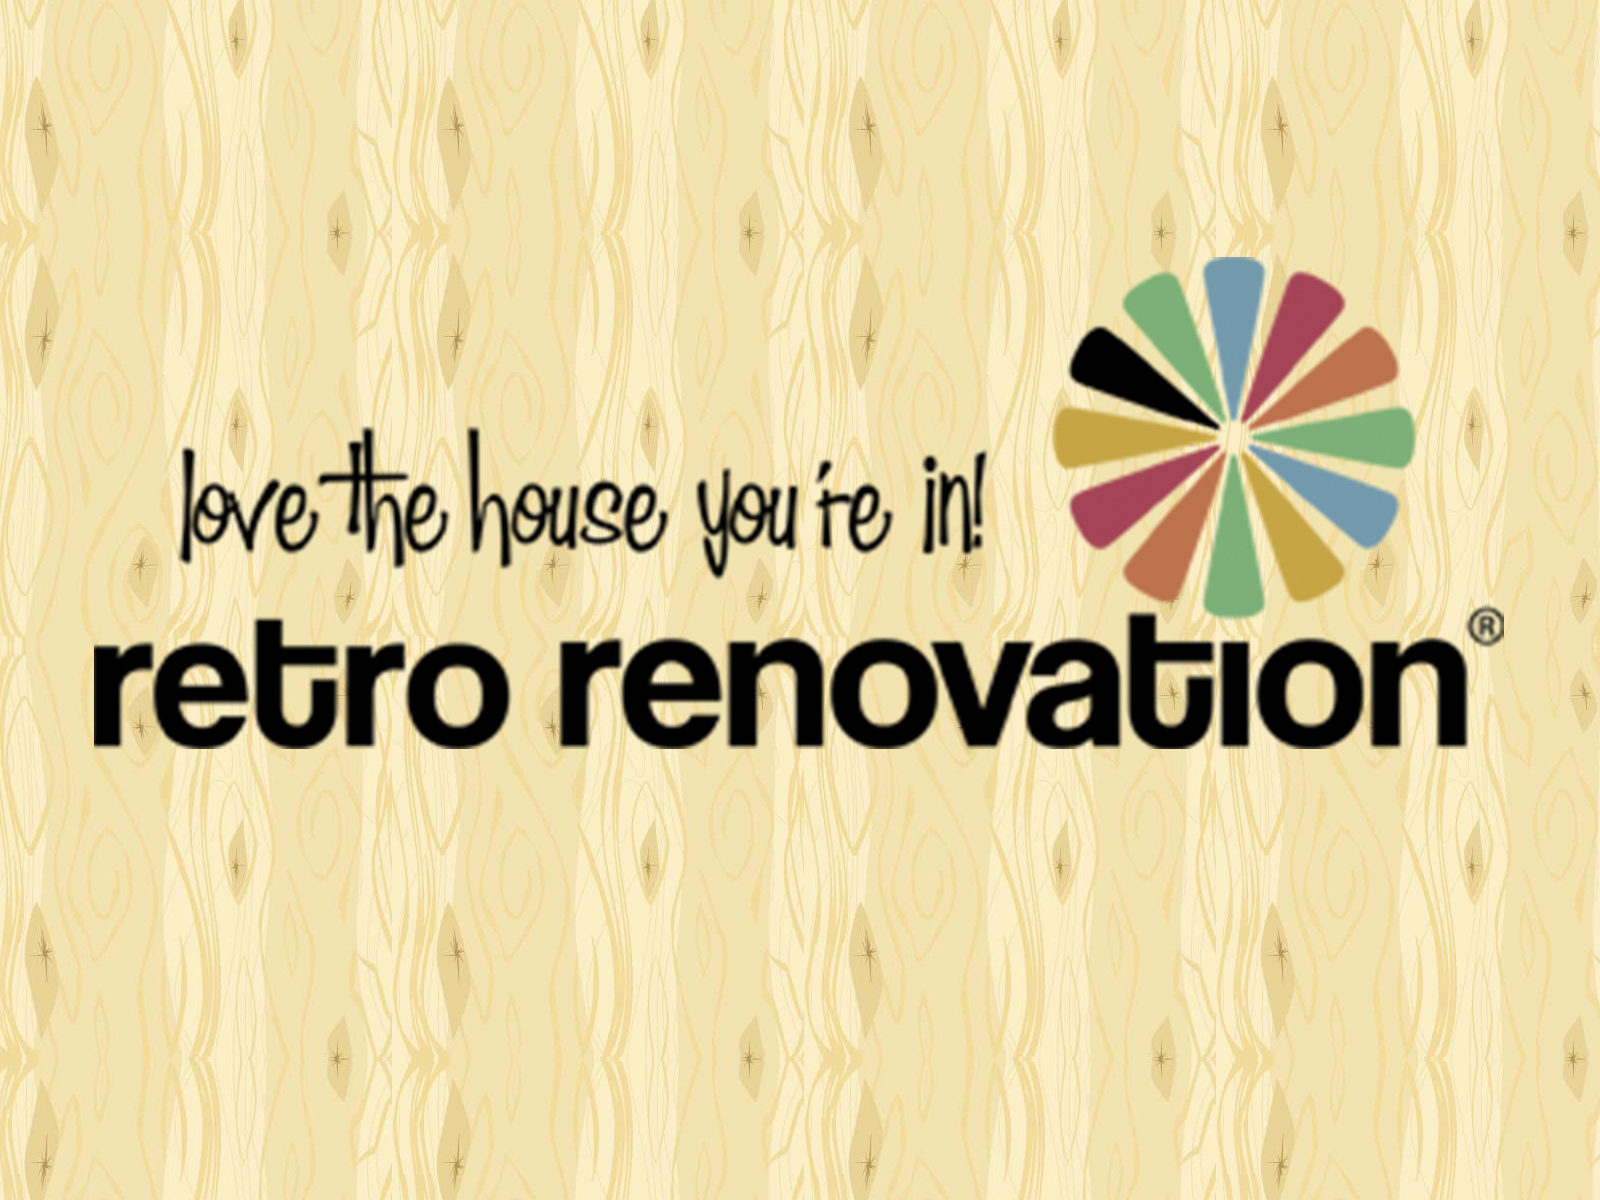 Look who's on Retro Renovation today!